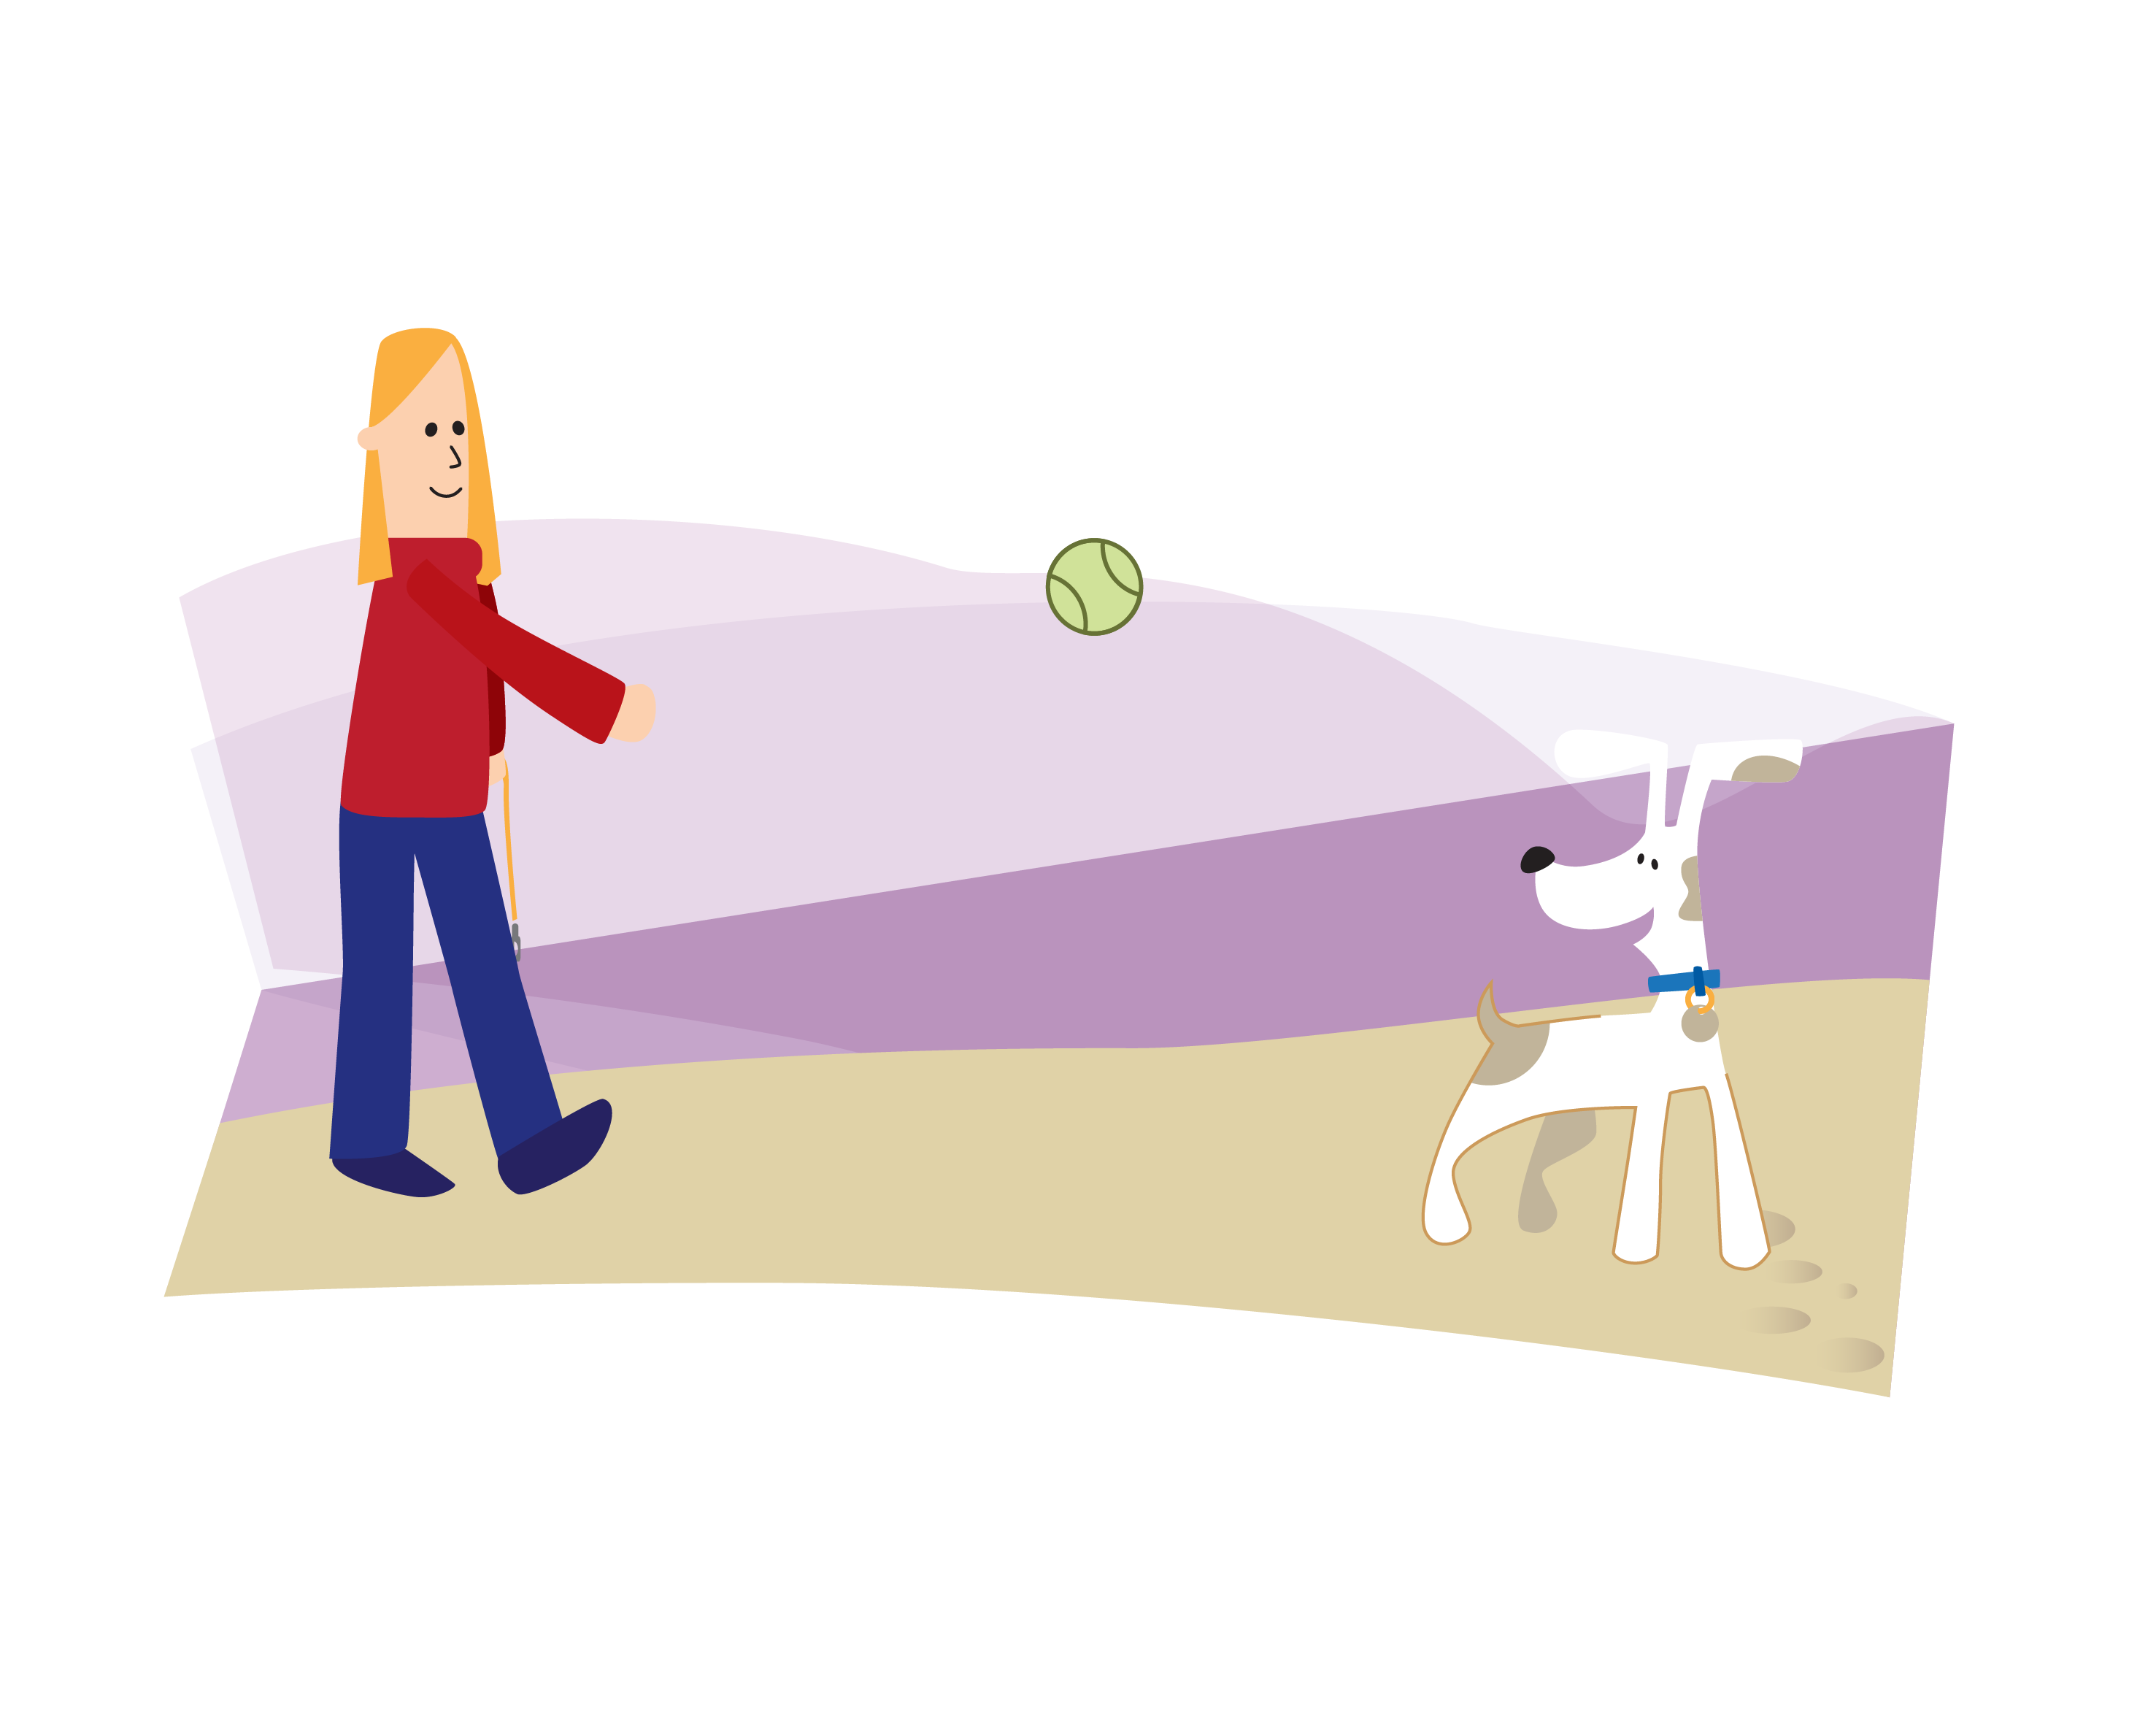 Image of a girl walking her dog on a path and throwing a ball down the path